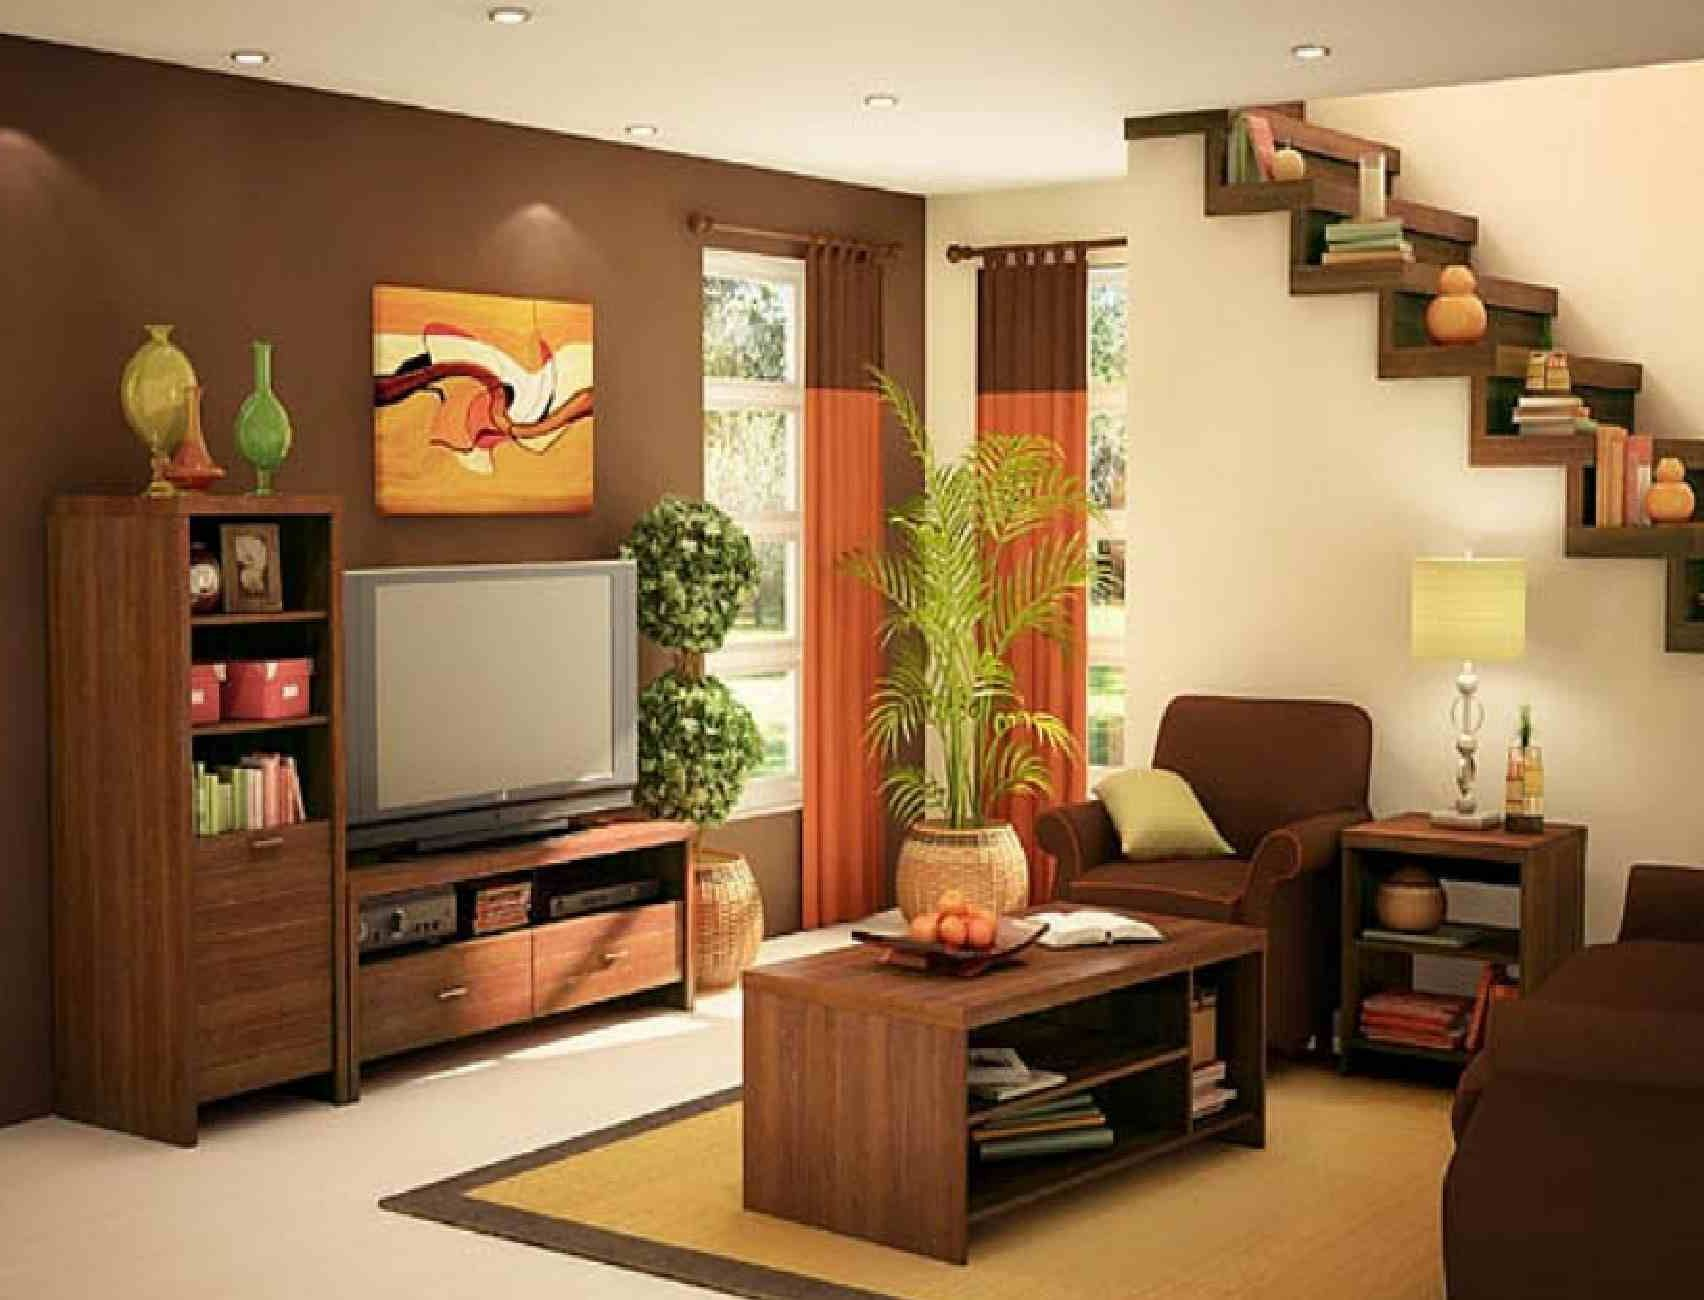 14 Amazing Living Room Designs Indian Style Interior And Decorating Ideas Archlux Net Small House Interior Small House Interior Design Simple Living Room Designs